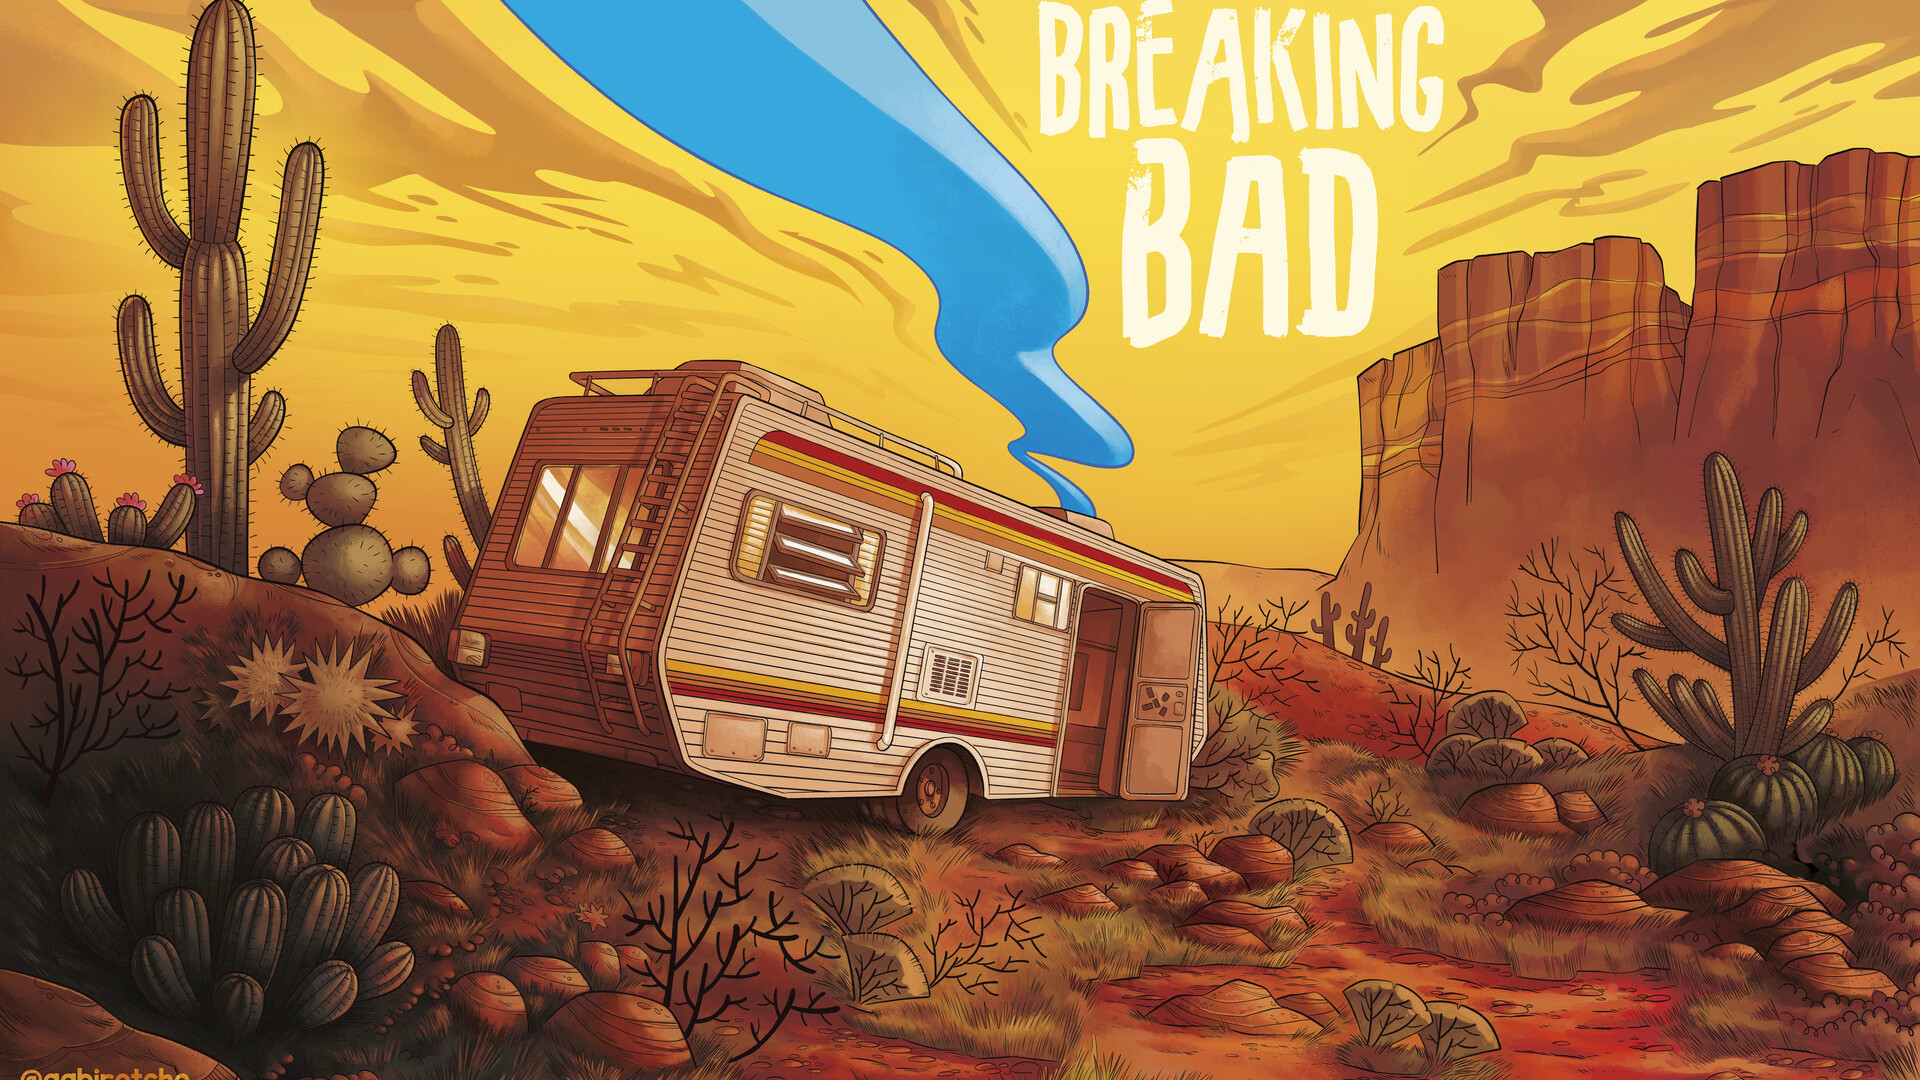 1920x1080 Breaking Bad Van Artwork Laptop Full Hd 1080p Hd 4k